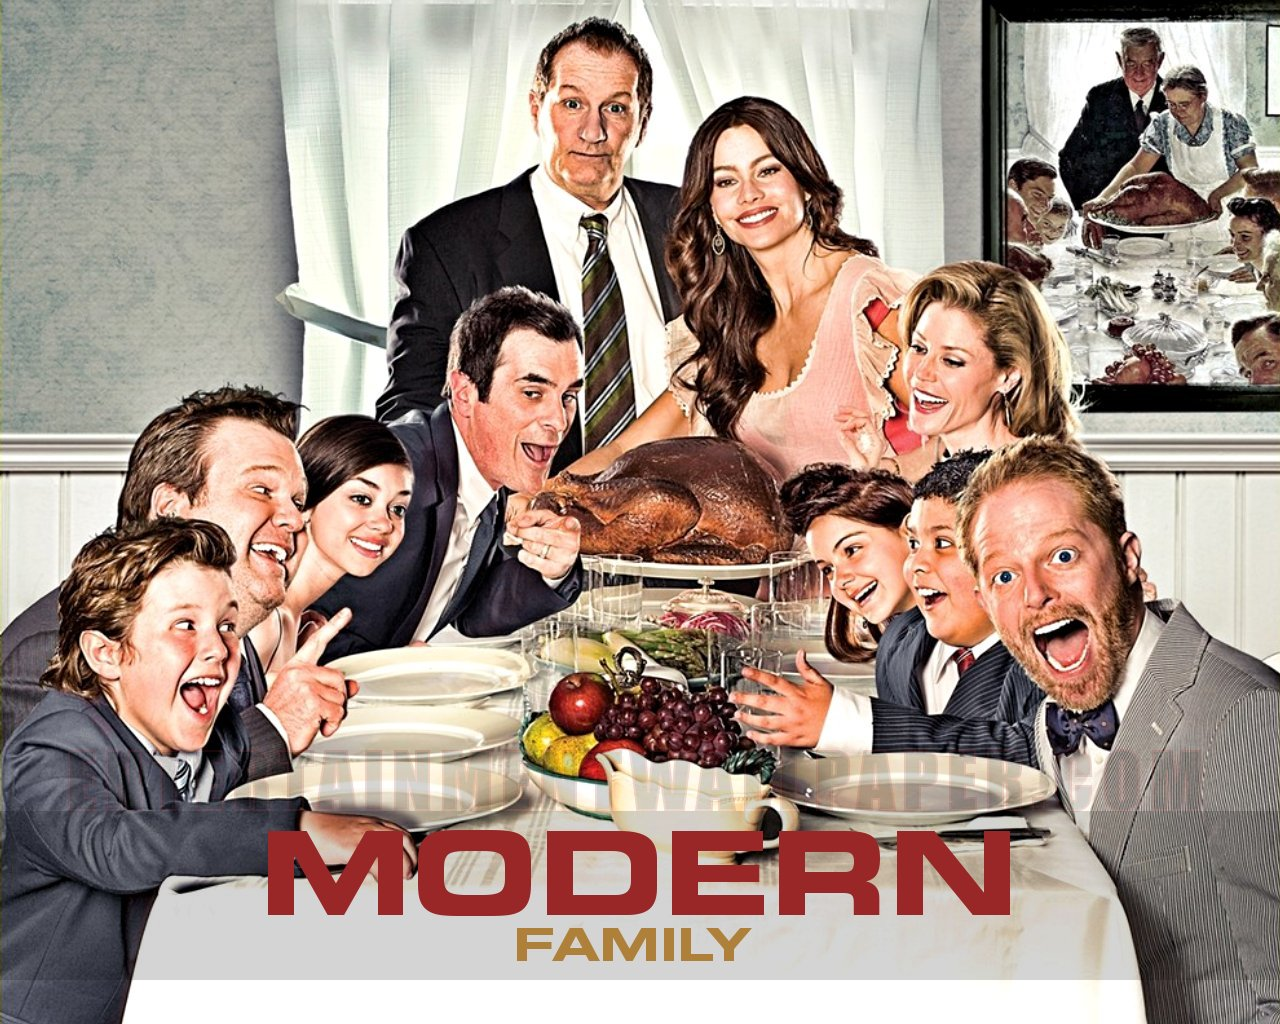 modern family wallpaper photo - photo #21